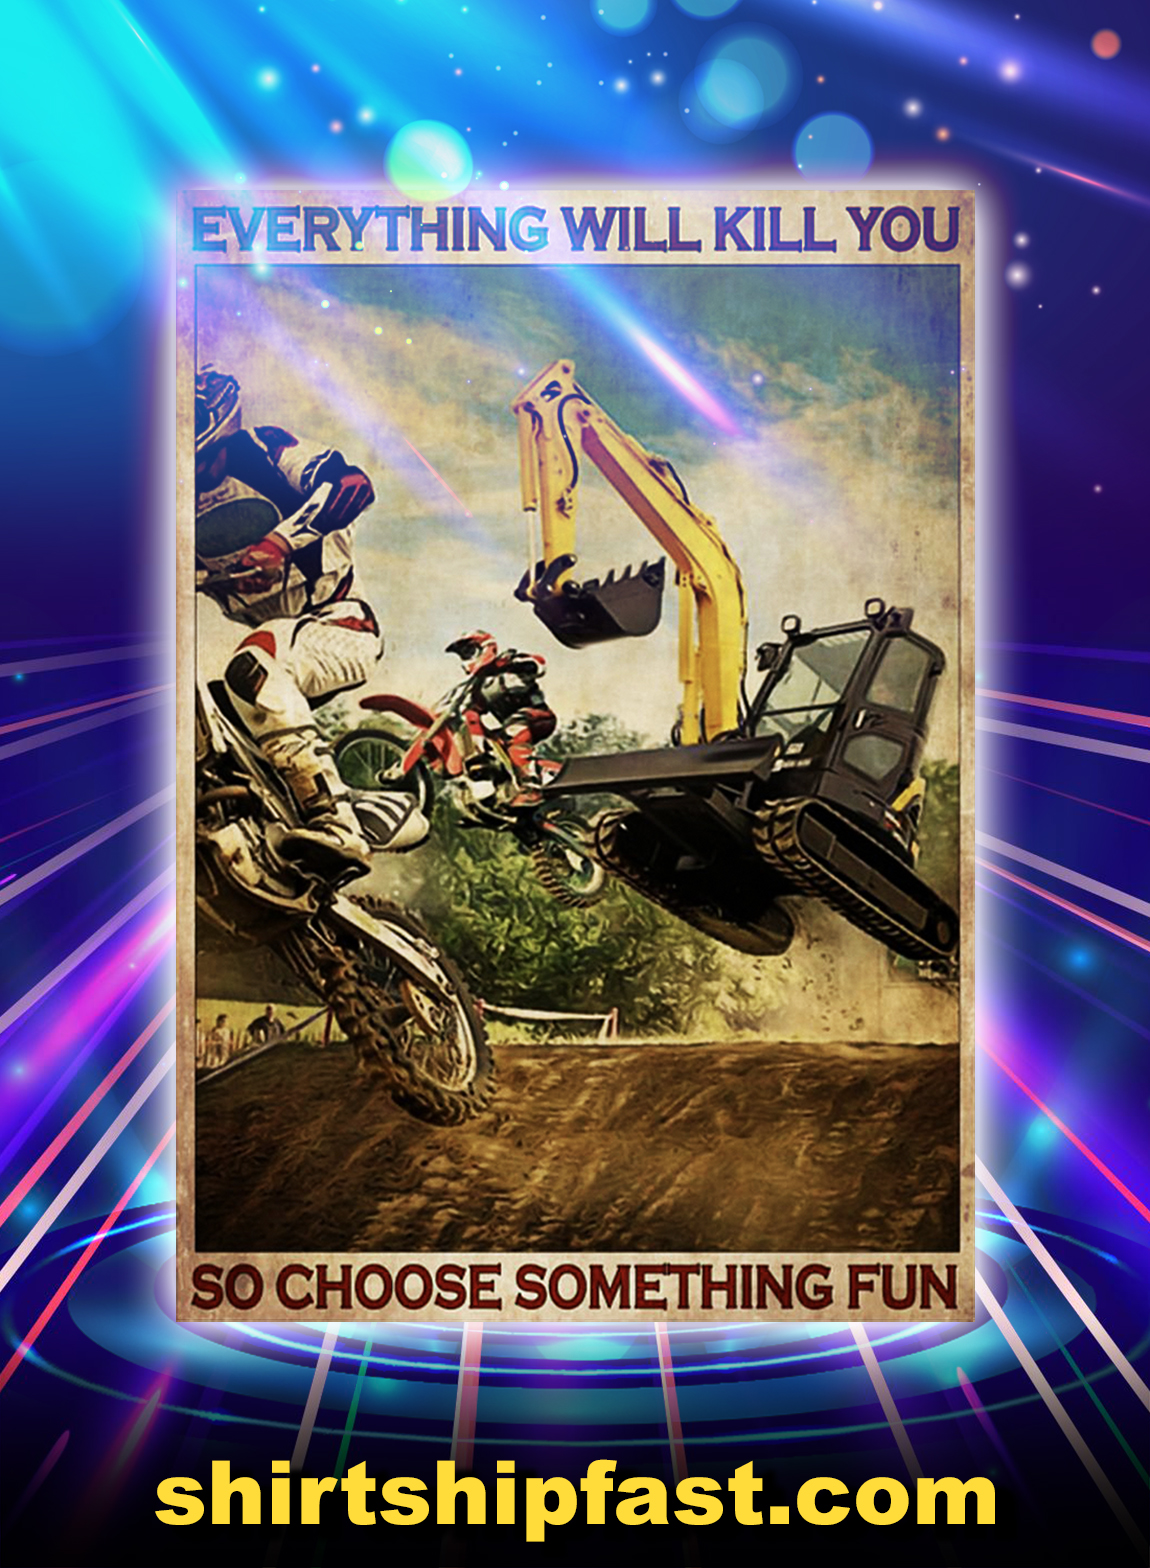 Motocross and excavator everything will kill you so choose something fun poster - A3